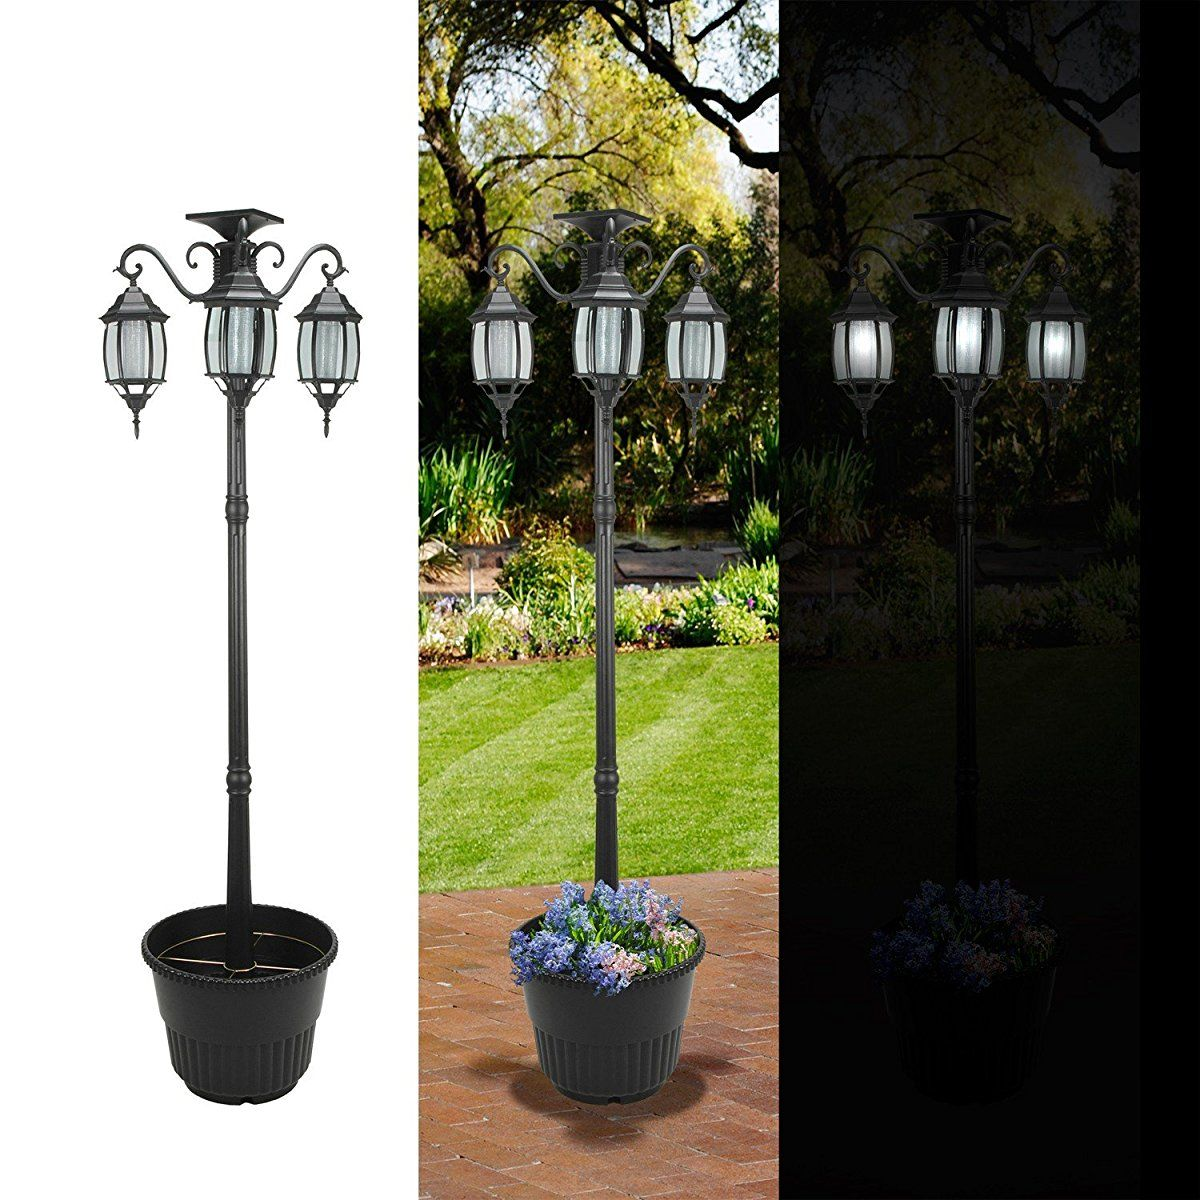 6.7 ft (80 in) Tall Solar Lamp Post and Planter 3 Heads